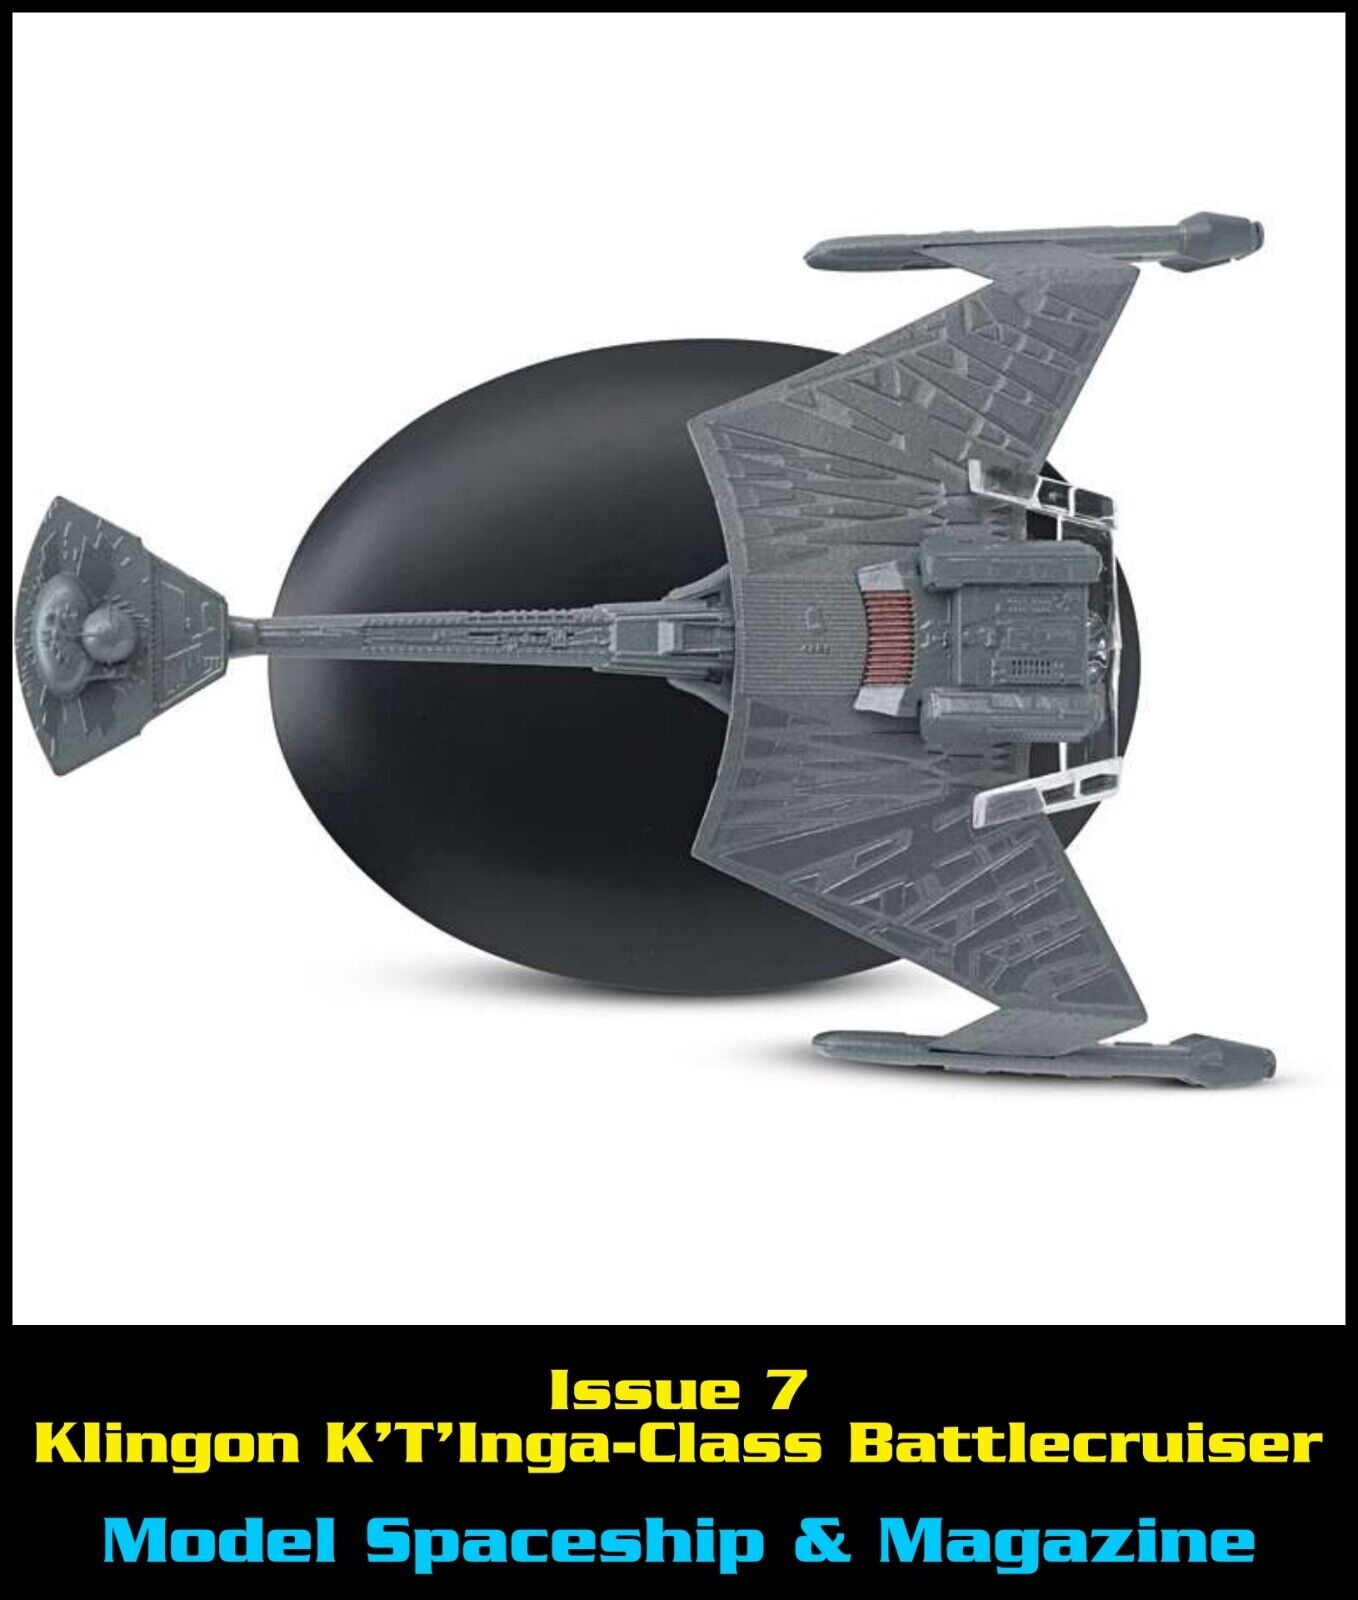 Issue 7: Klingon K'T'Inga-Class Battlecruiser